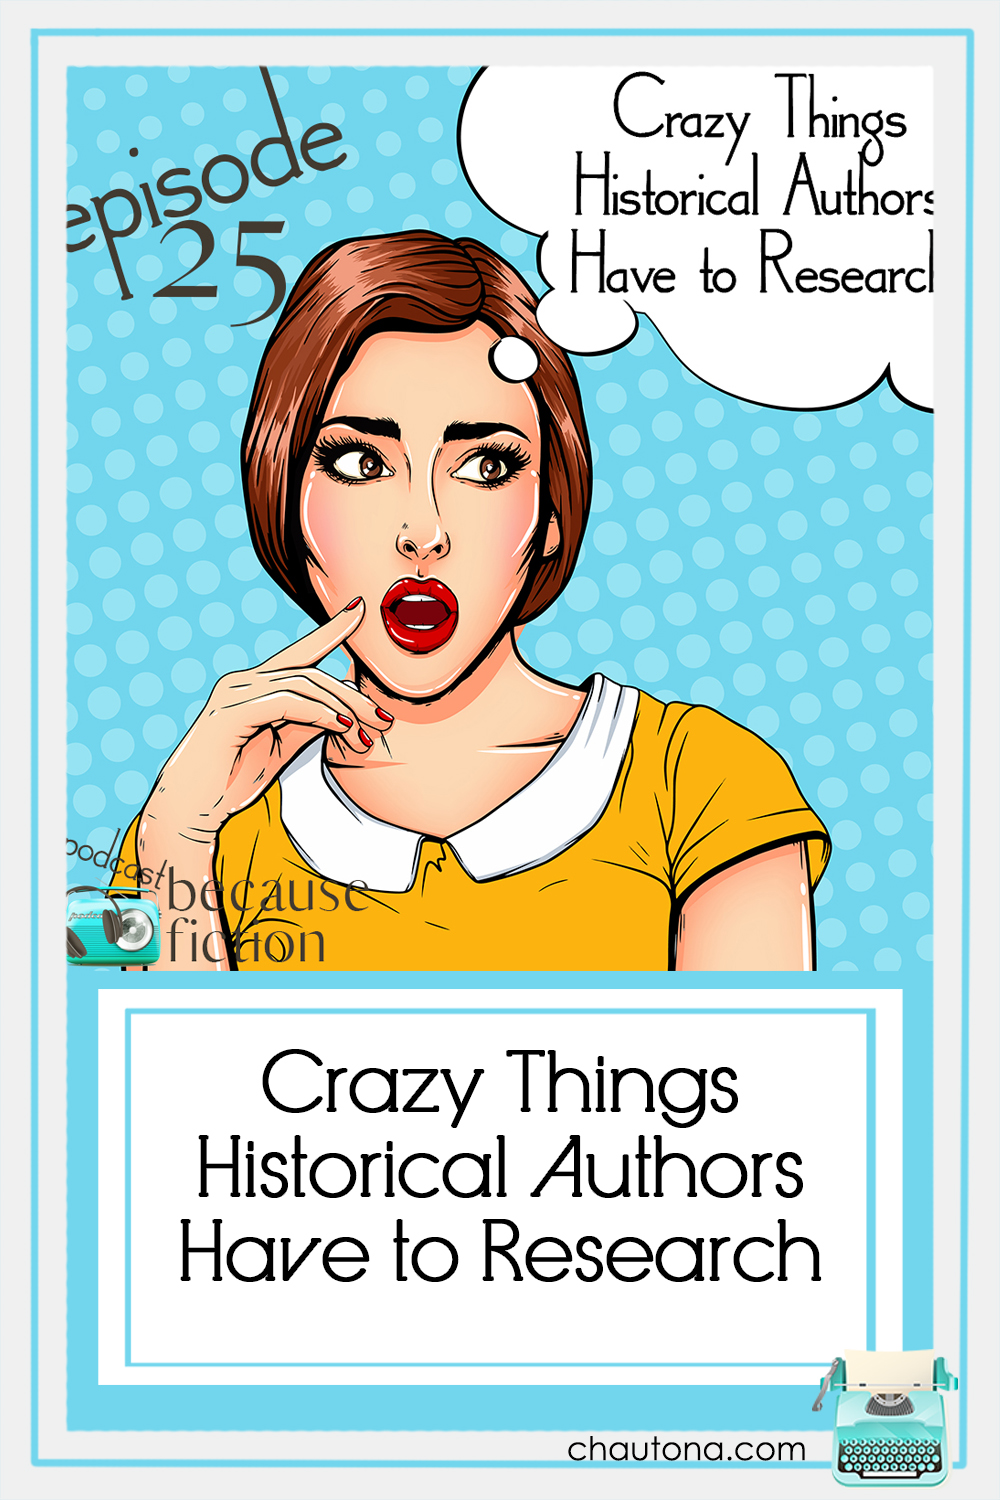 Crazy Things Historical Authors Have to Research